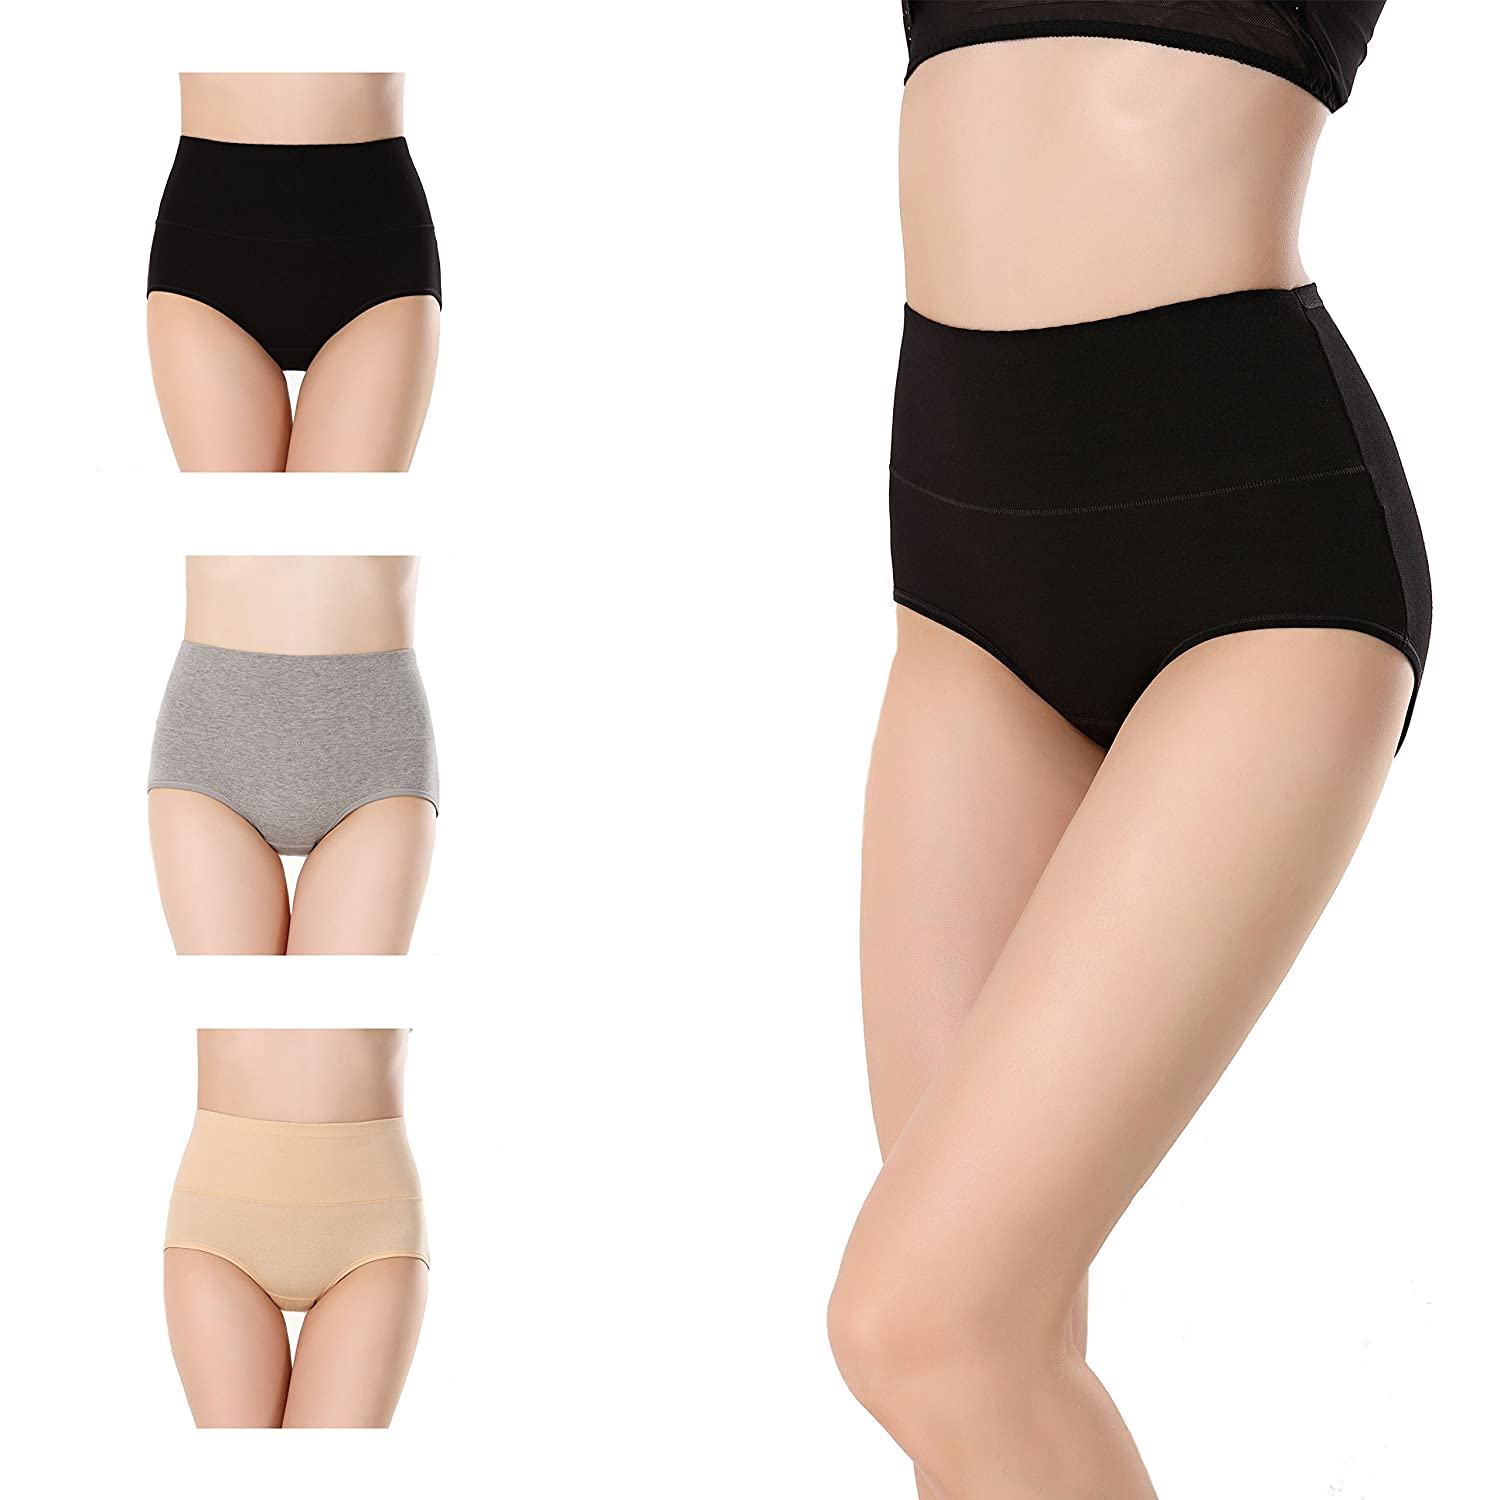 cc7e4a93c509 Women's High Waist Solid Color Tummy Control Cotton Briefs No Muffin Top  Underwear Stretch Panties Underpants